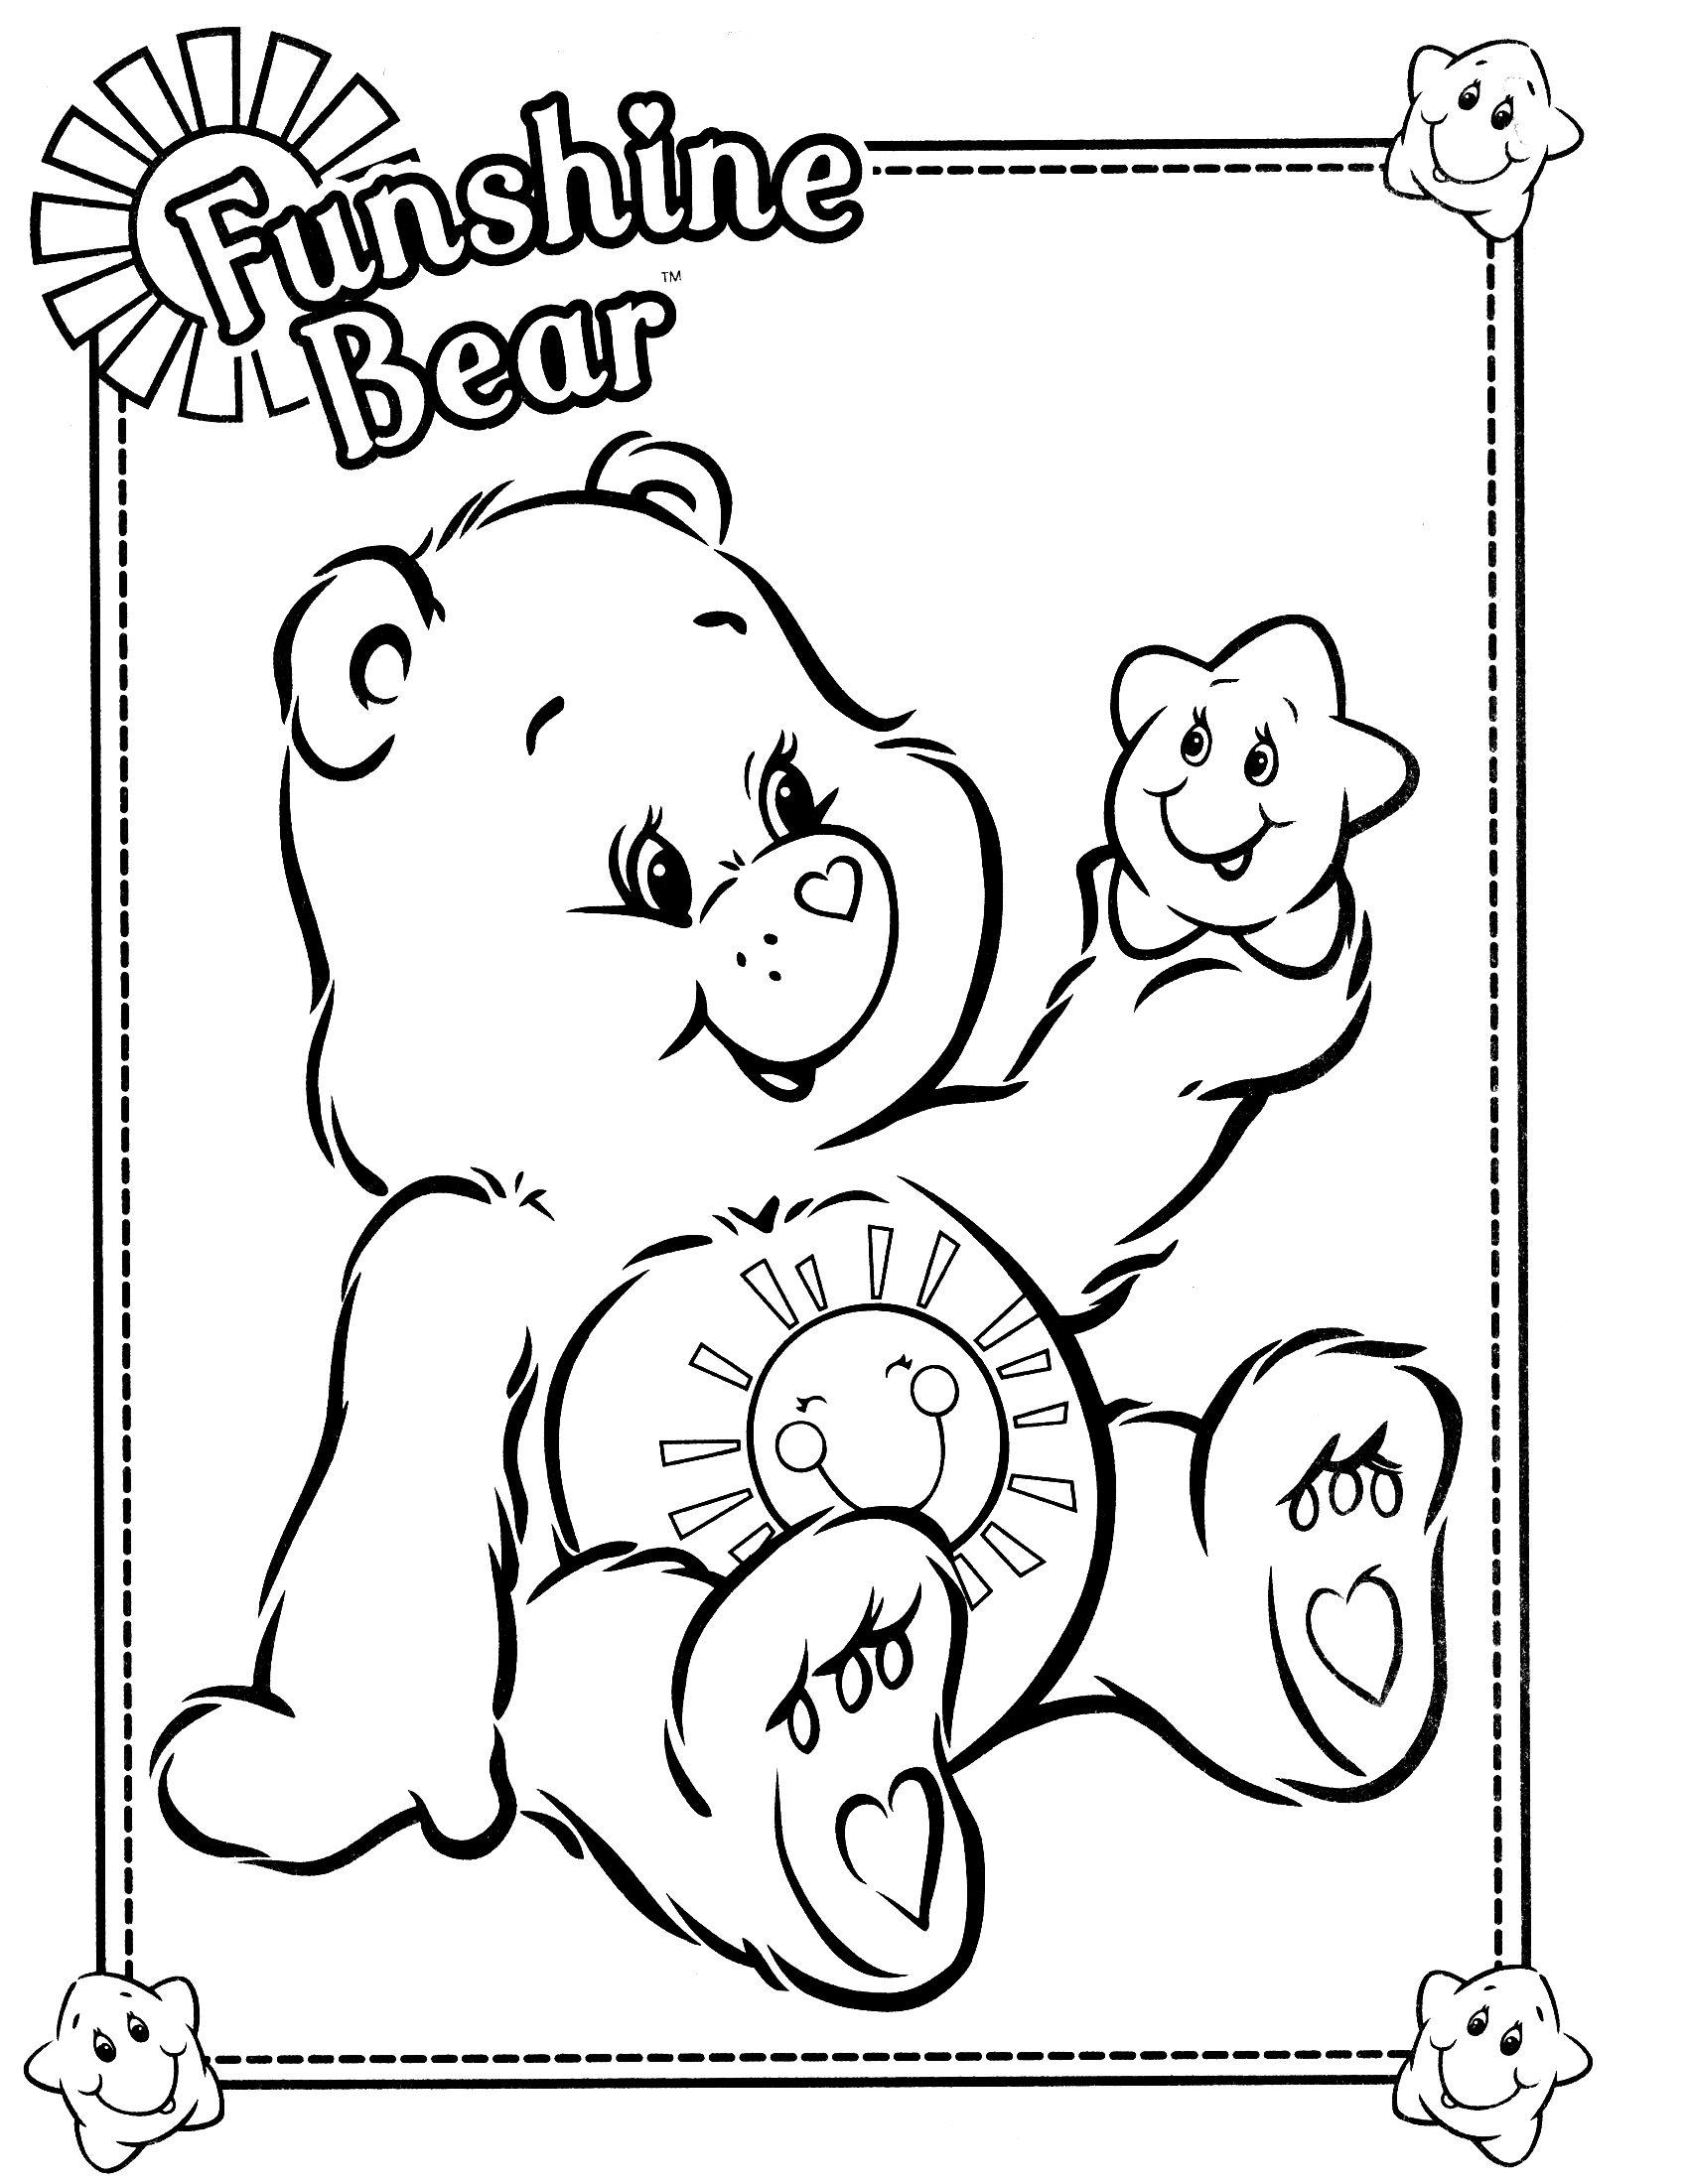 care bears coloring page Colouring Pages Pinterest Care bears